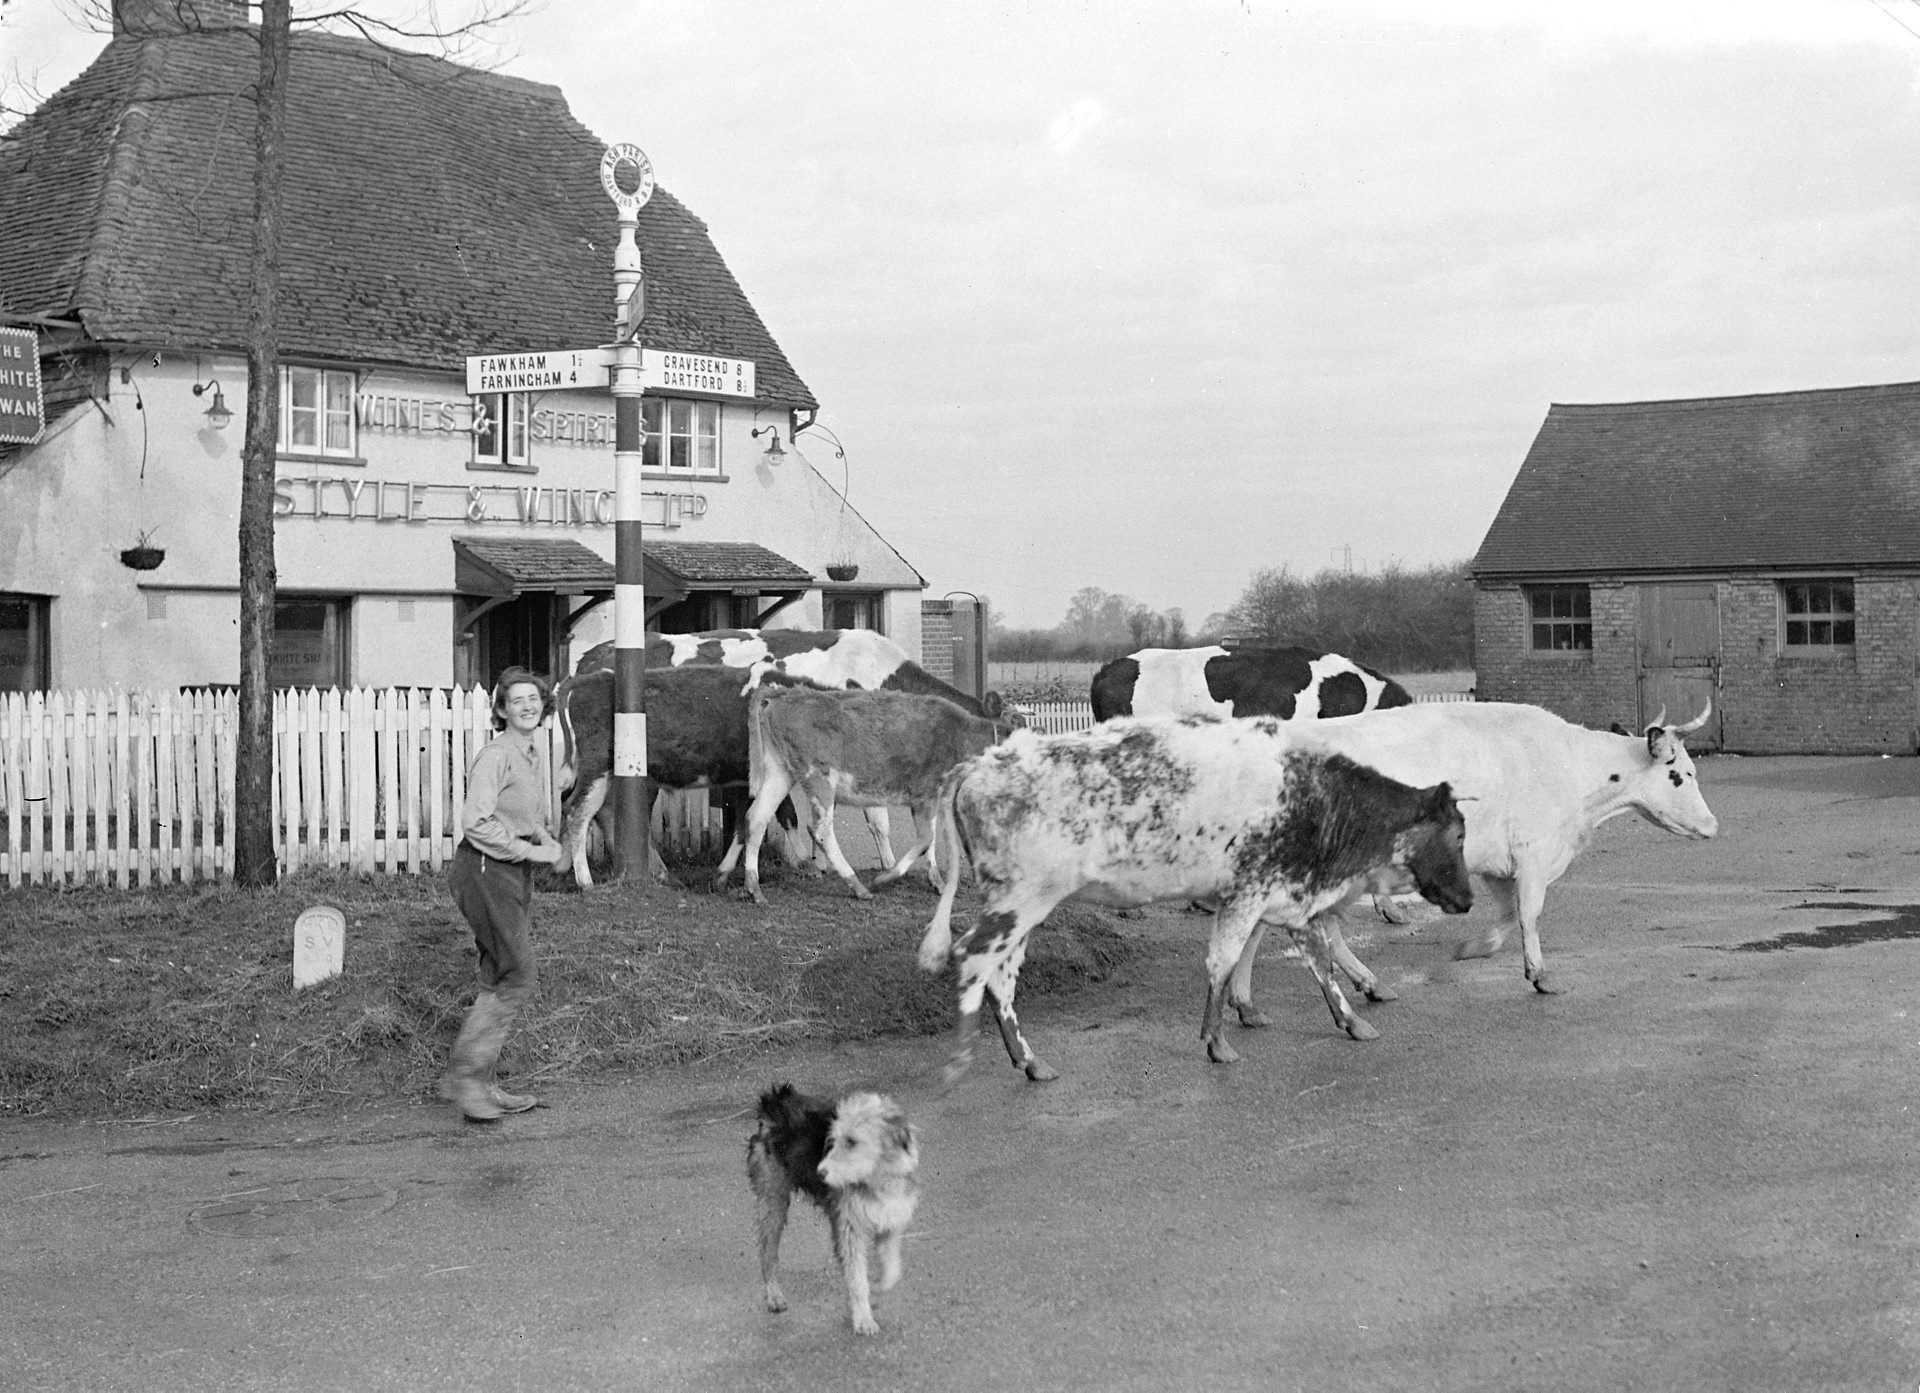 Cows at crossroad The White Swan in Ash, near Sevenoaks, Kent 1940